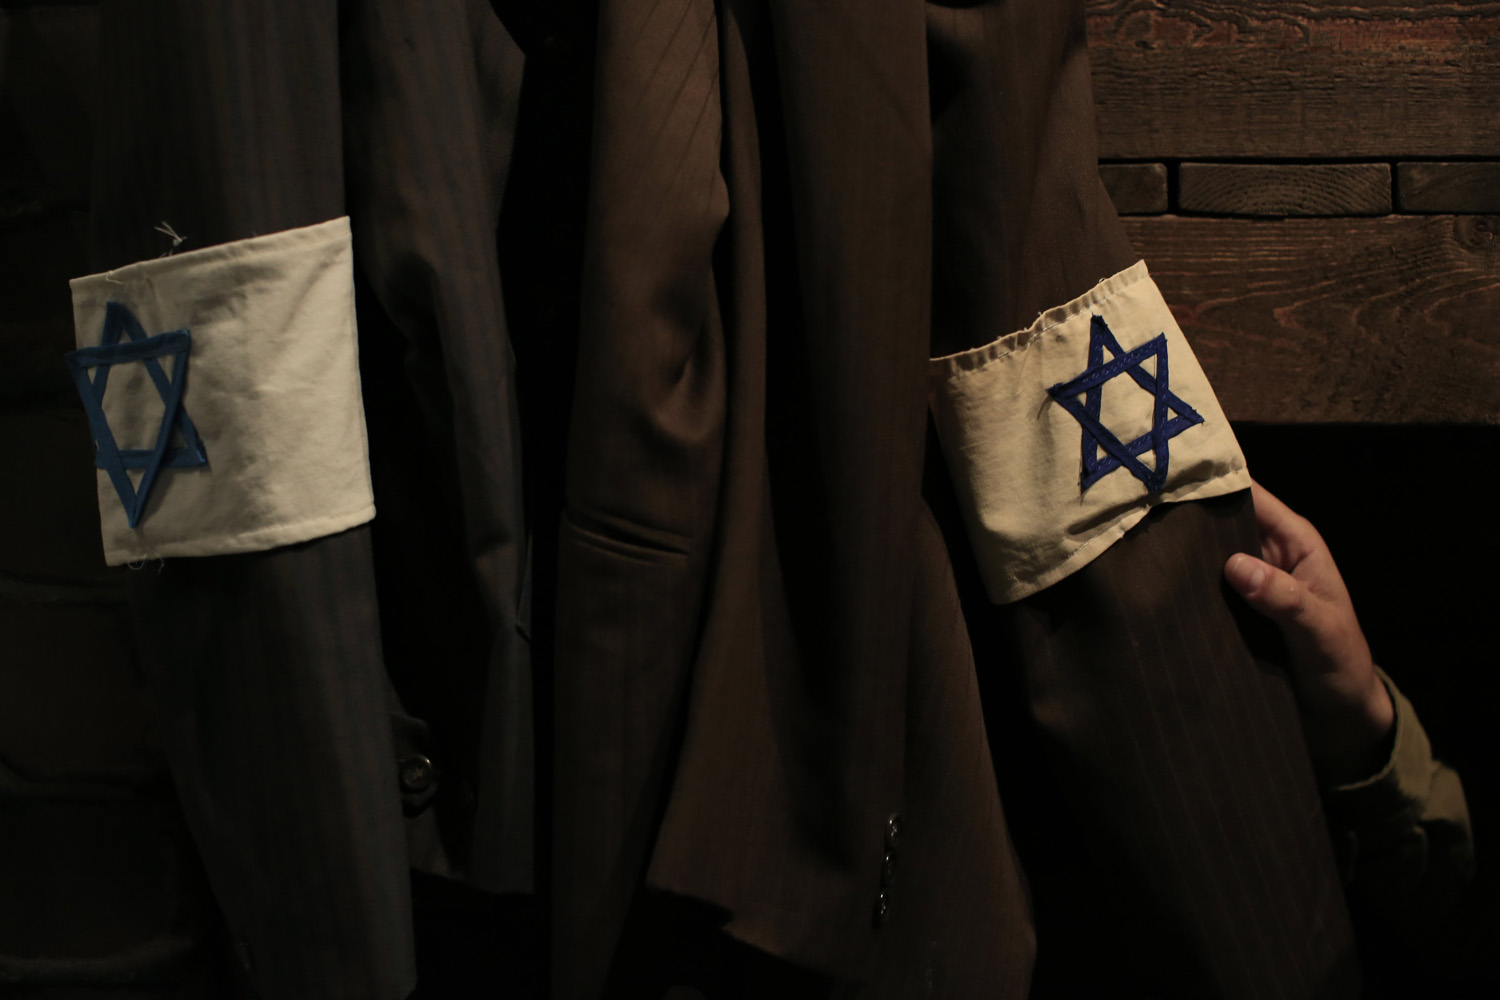 Apr. 27, 2014. An Israeli officer looks at a jacket with a Star of David arm band, in a model of the headquarters bunker of the Jewish Combat Organization (ZOB) Mila 18 in the Warsaw Ghetto at the museum  From Holocaust to Revival  in Kibbutz Yad Mordechai near the costal town of Ashkelon, Israel.